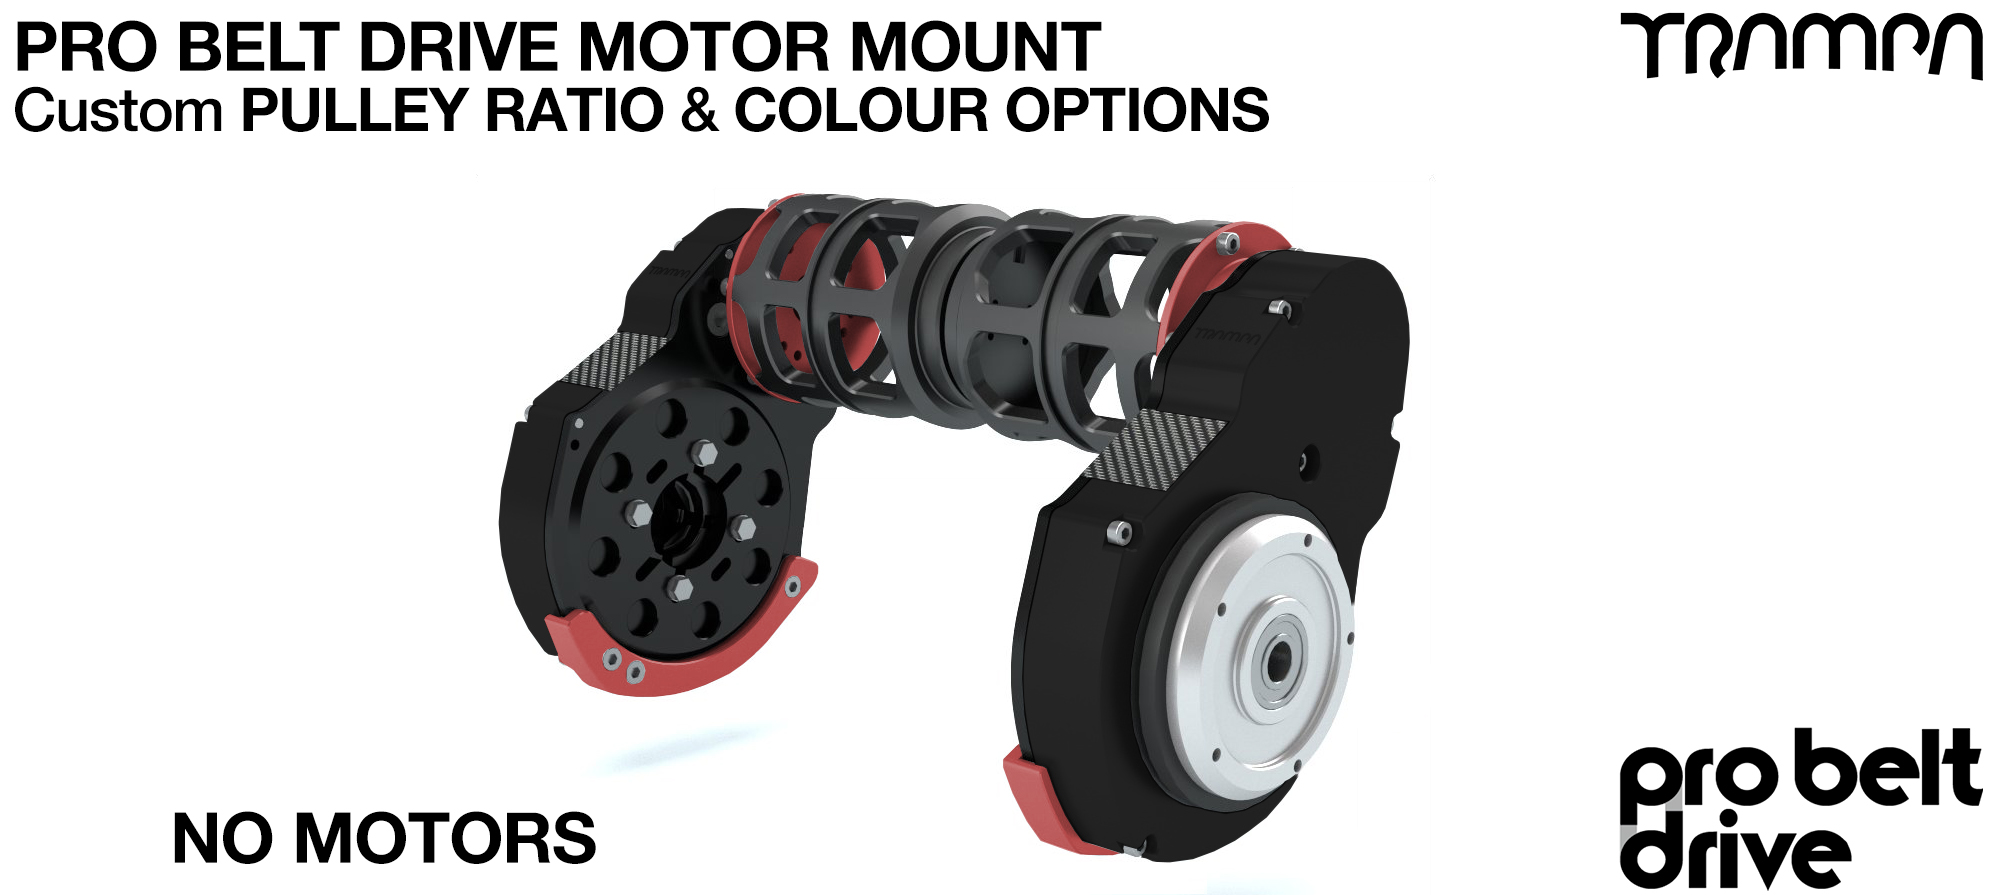 Mountainboard PRO Belt Drive TWIN Motor Mounts